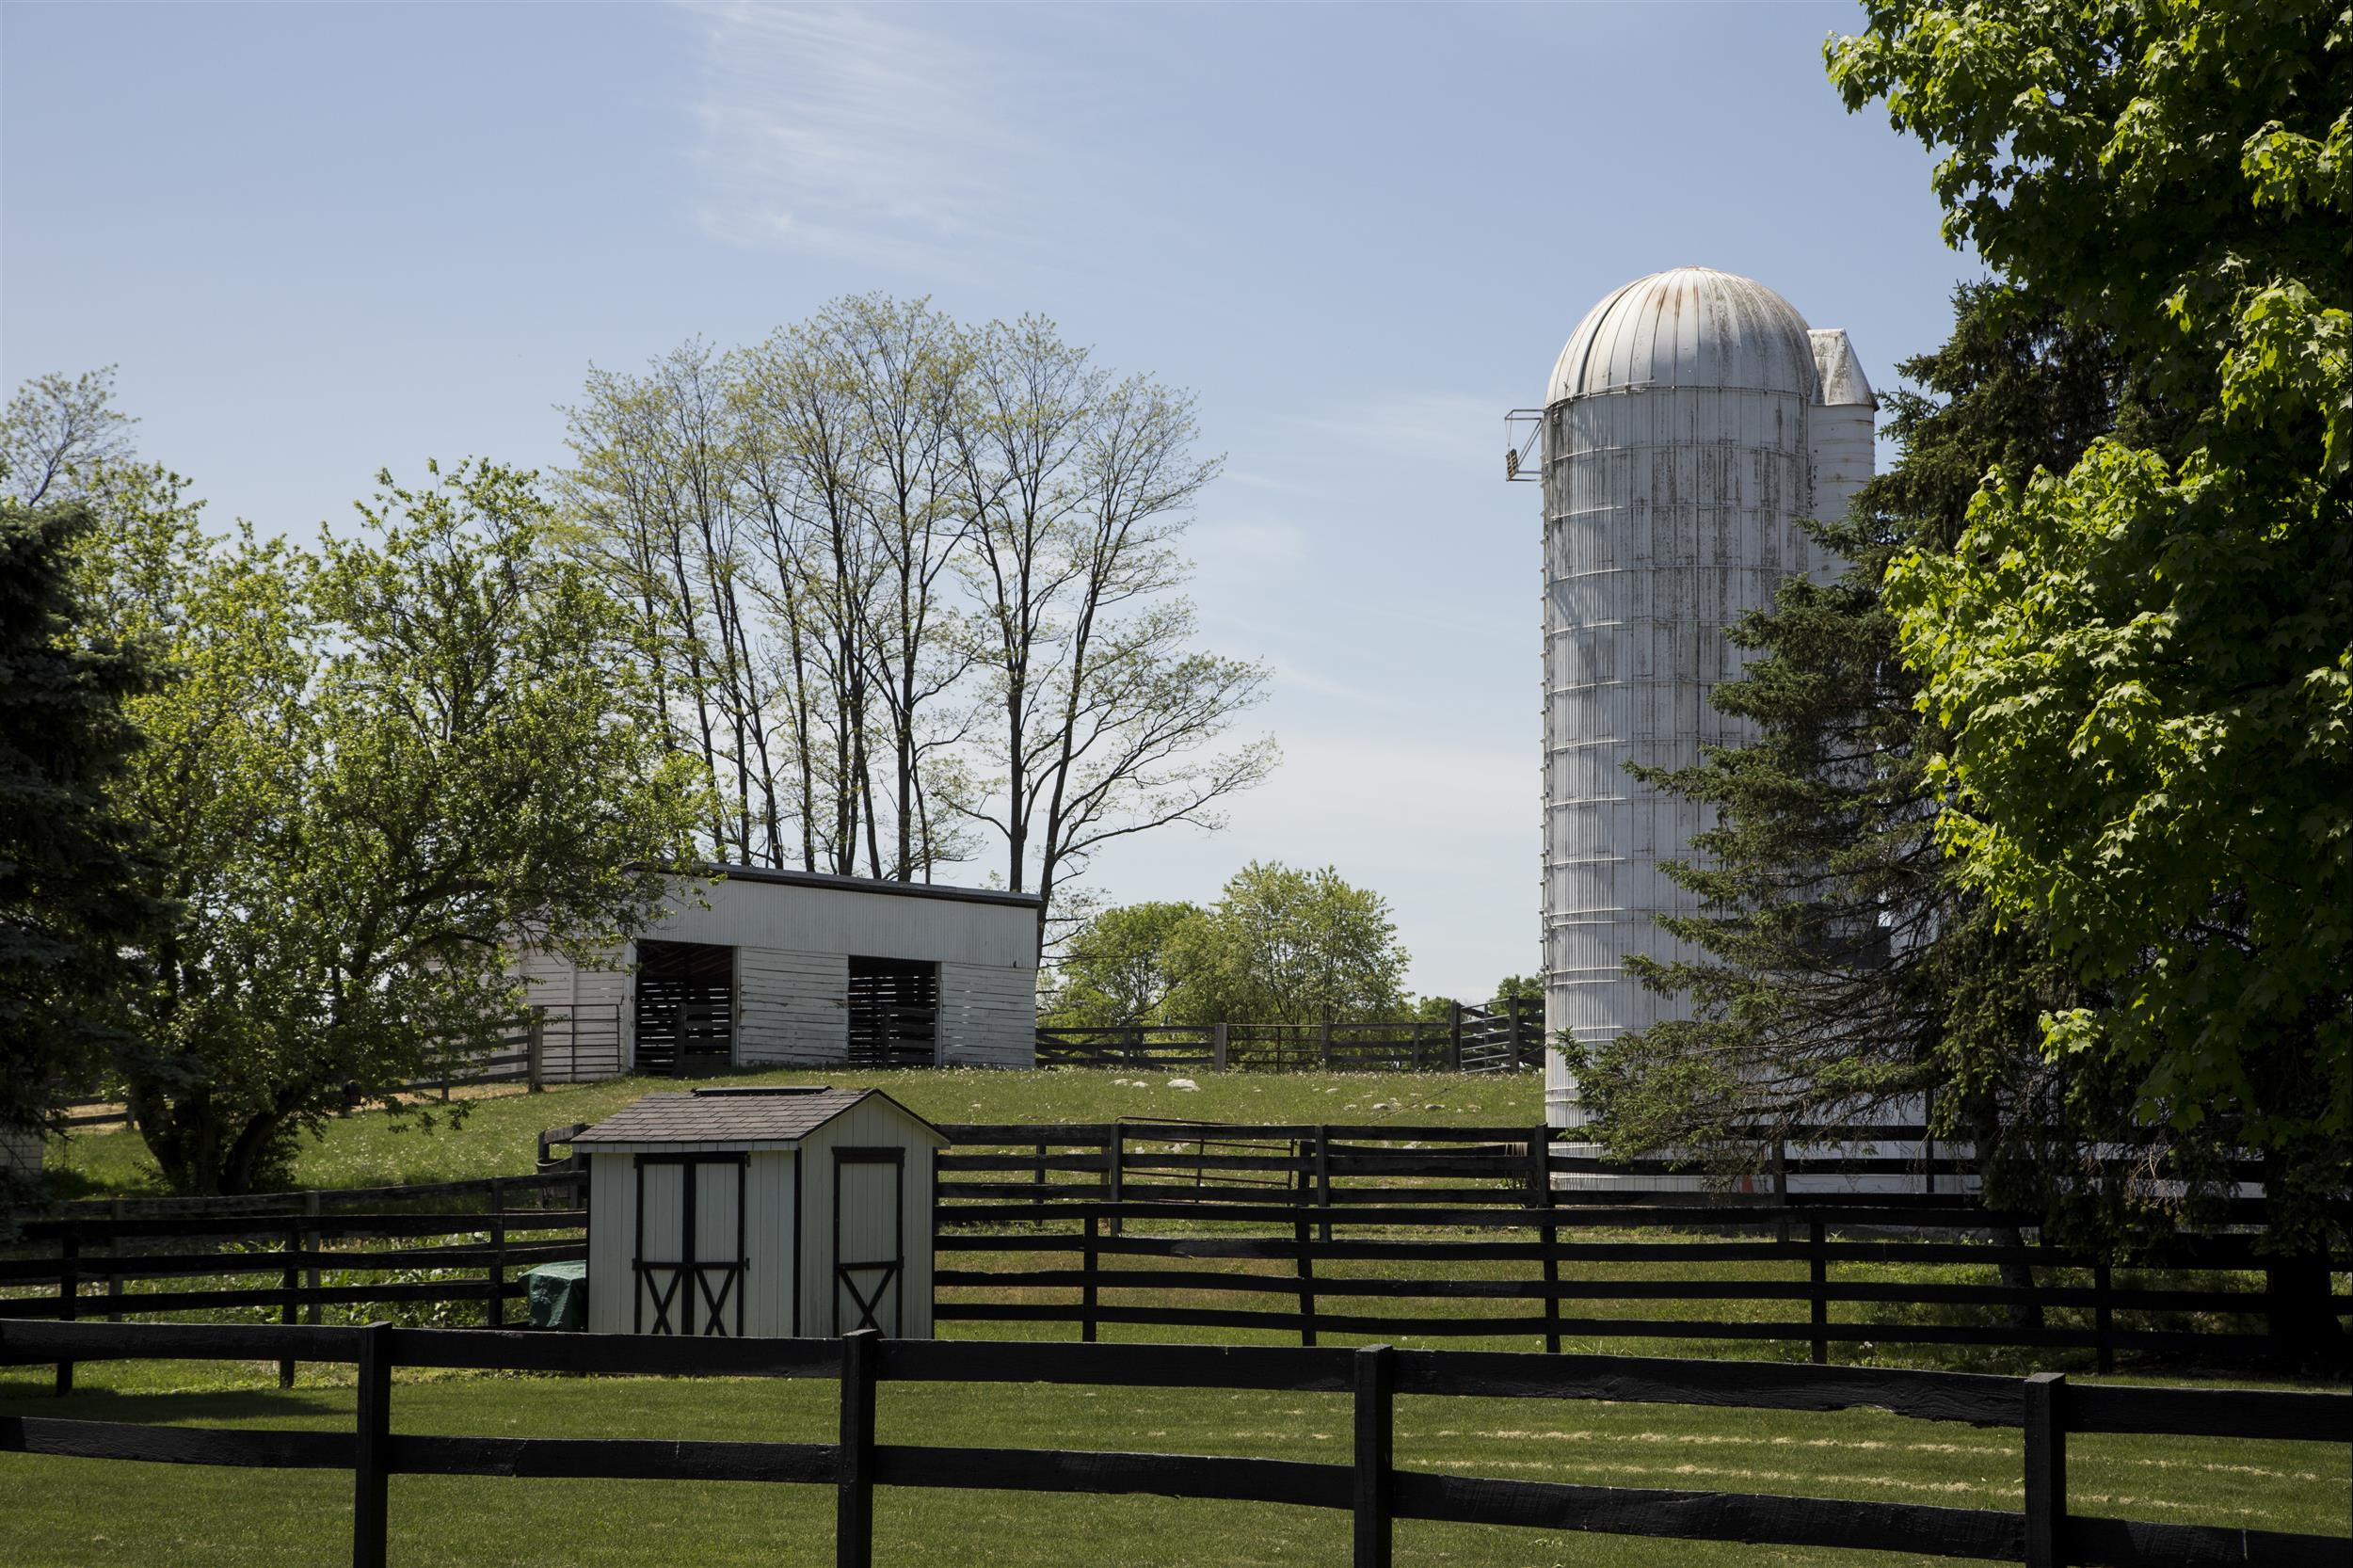 Silo-and-green-pastures.jpg